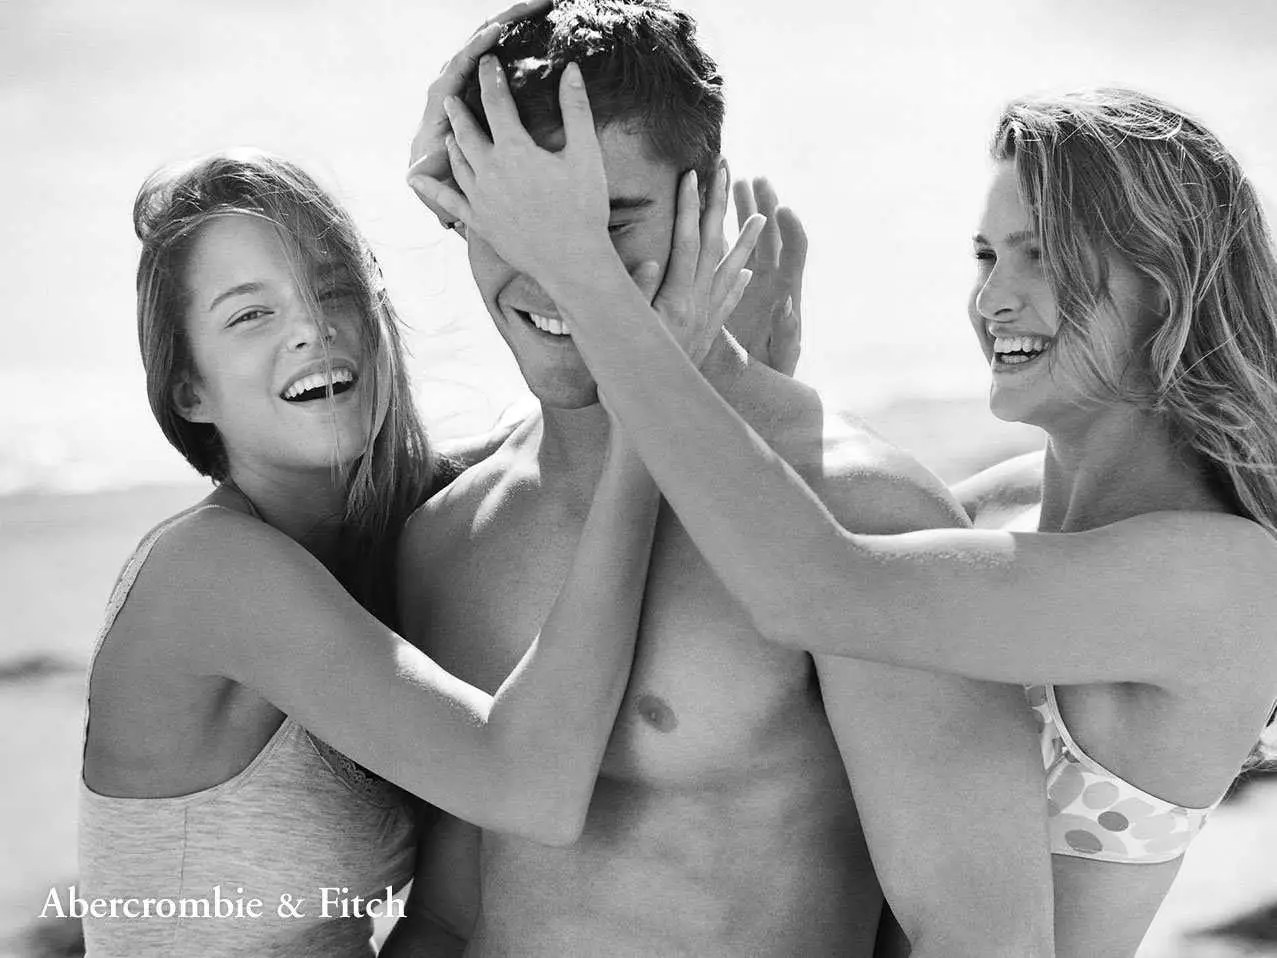 Abercrombie and fitch nude ad were